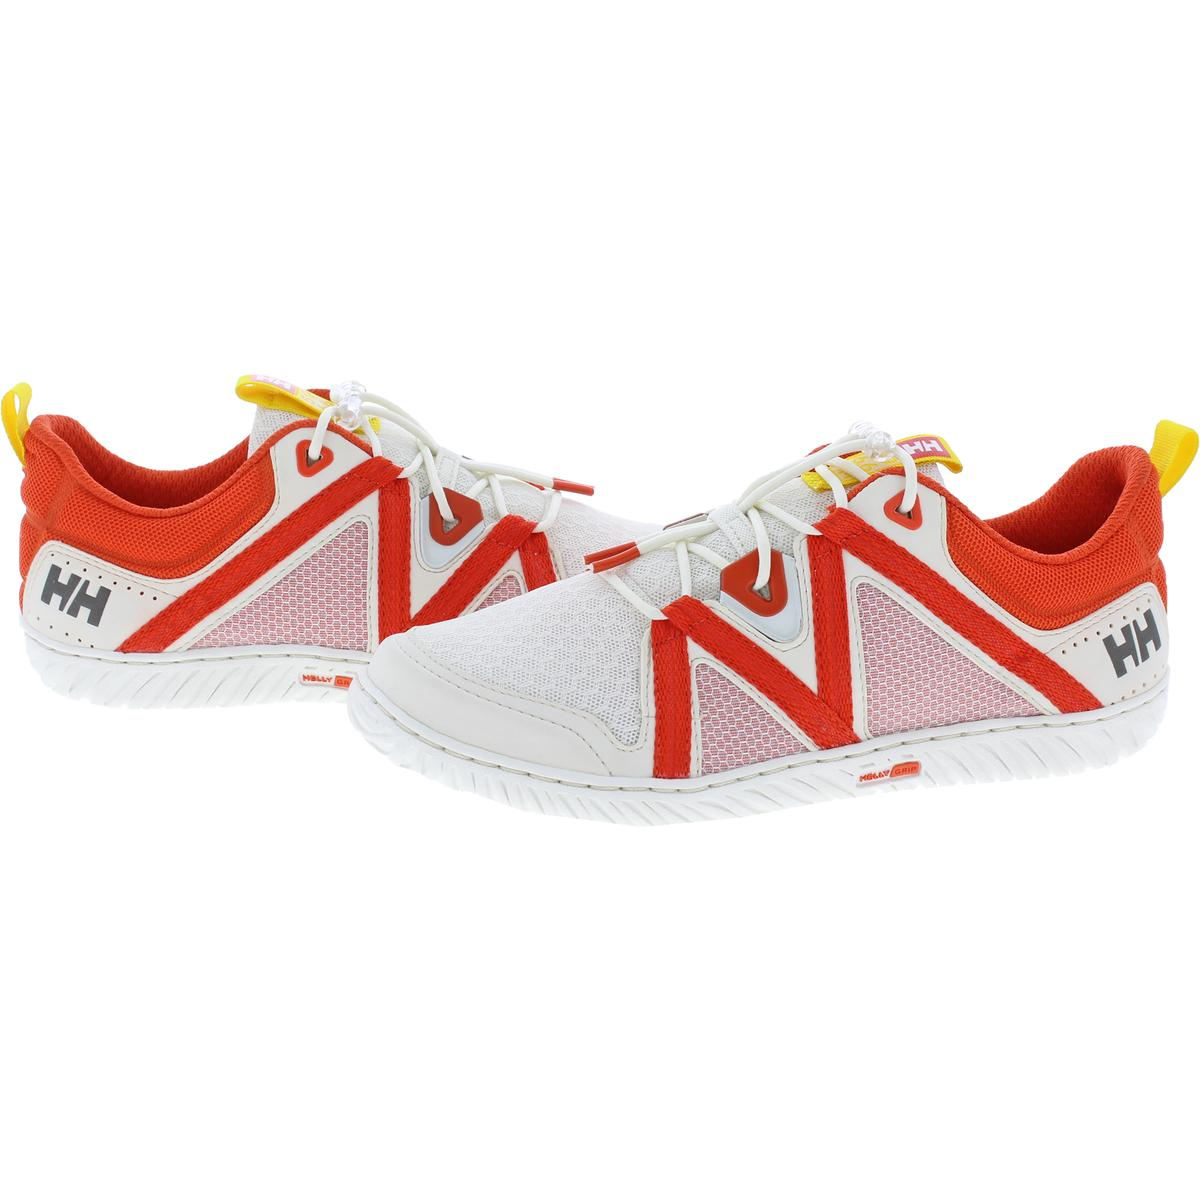 thumbnail 9 - Helly-Hansen-Womens-HP-Foil-F1-Fitness-Performance-Sneakers-Shoes-BHFO-0206